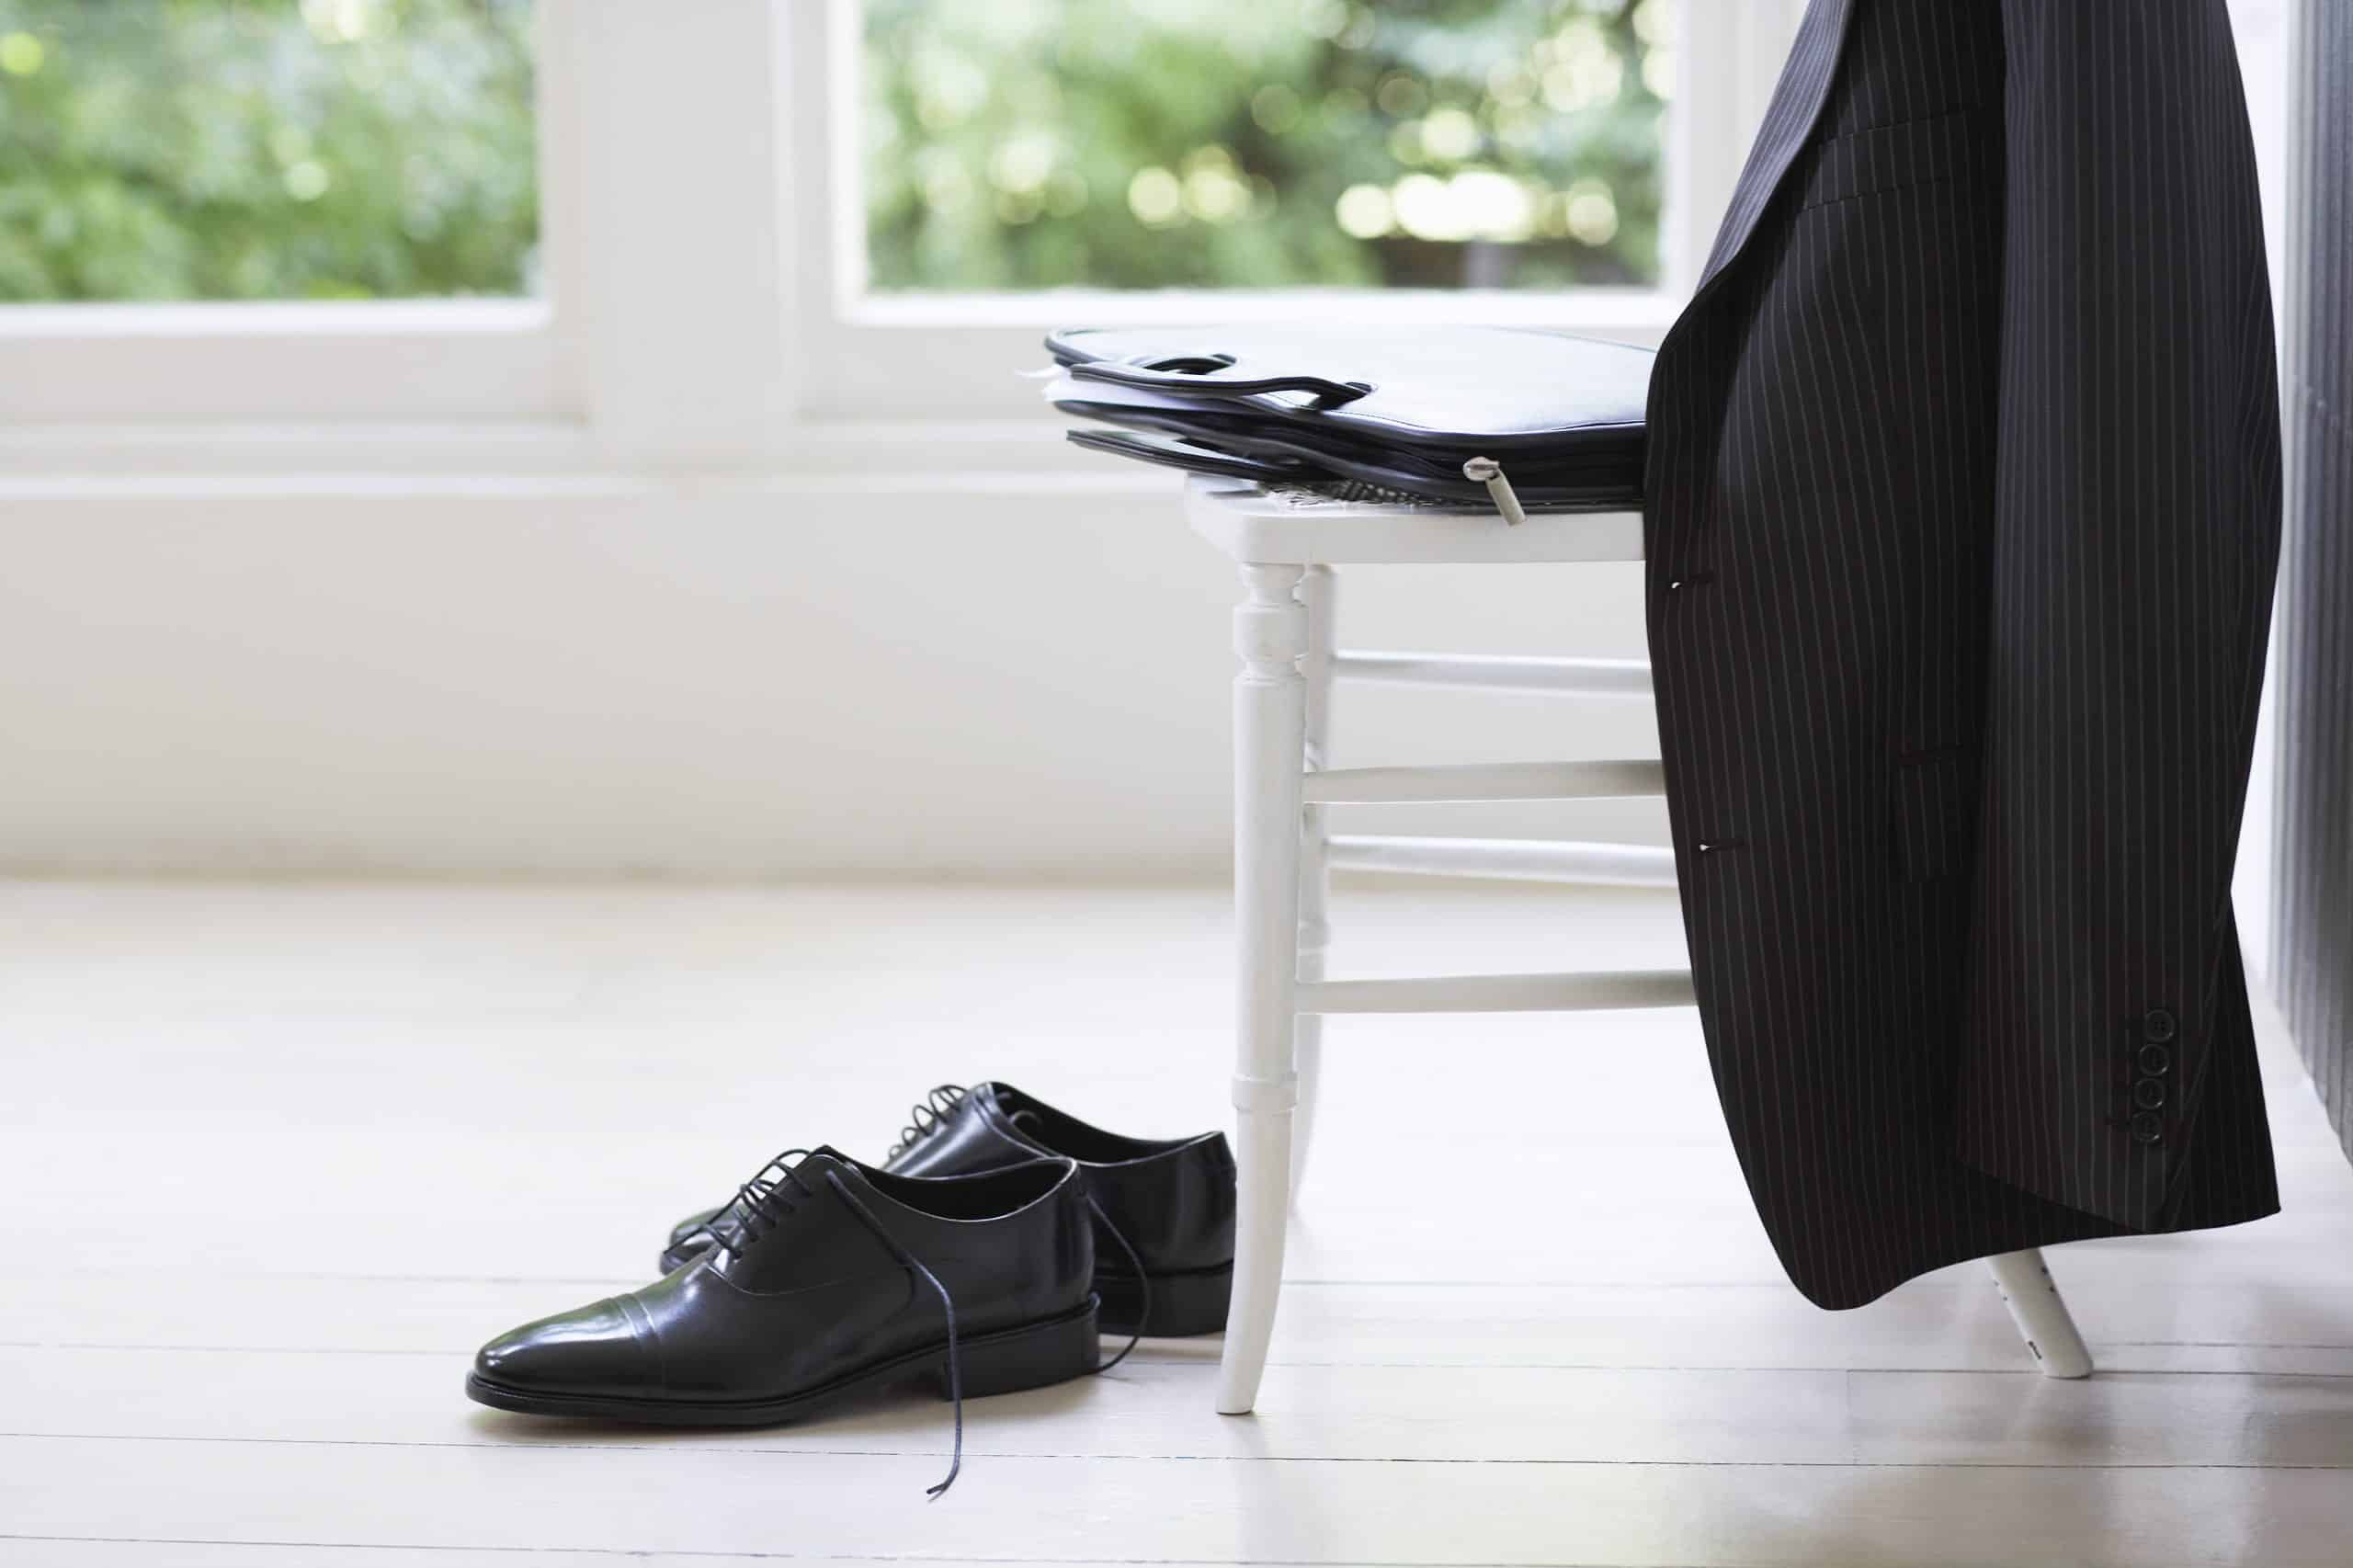 jacket on the back of a chair with empty shoes on the floor